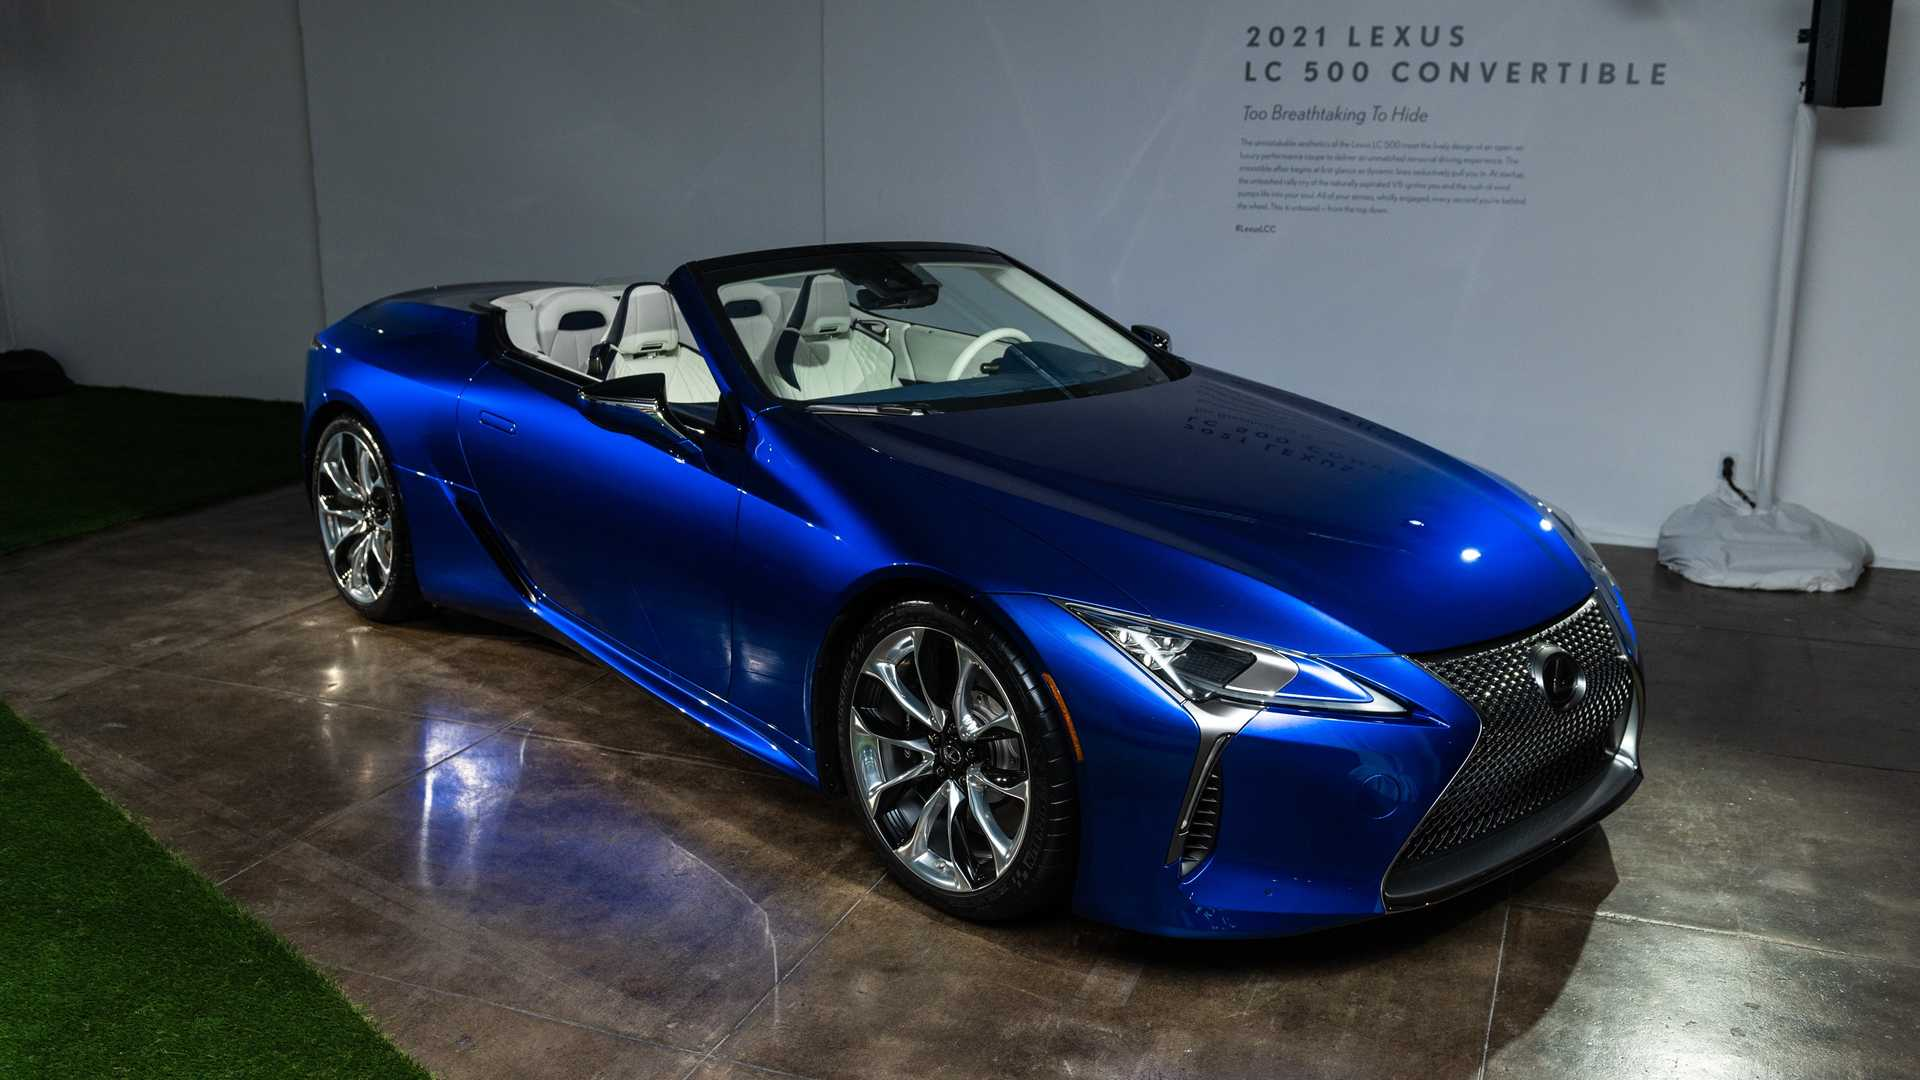 2021 Lexus Lc 500 Convertible Priced From 101 000 Options Aplenty